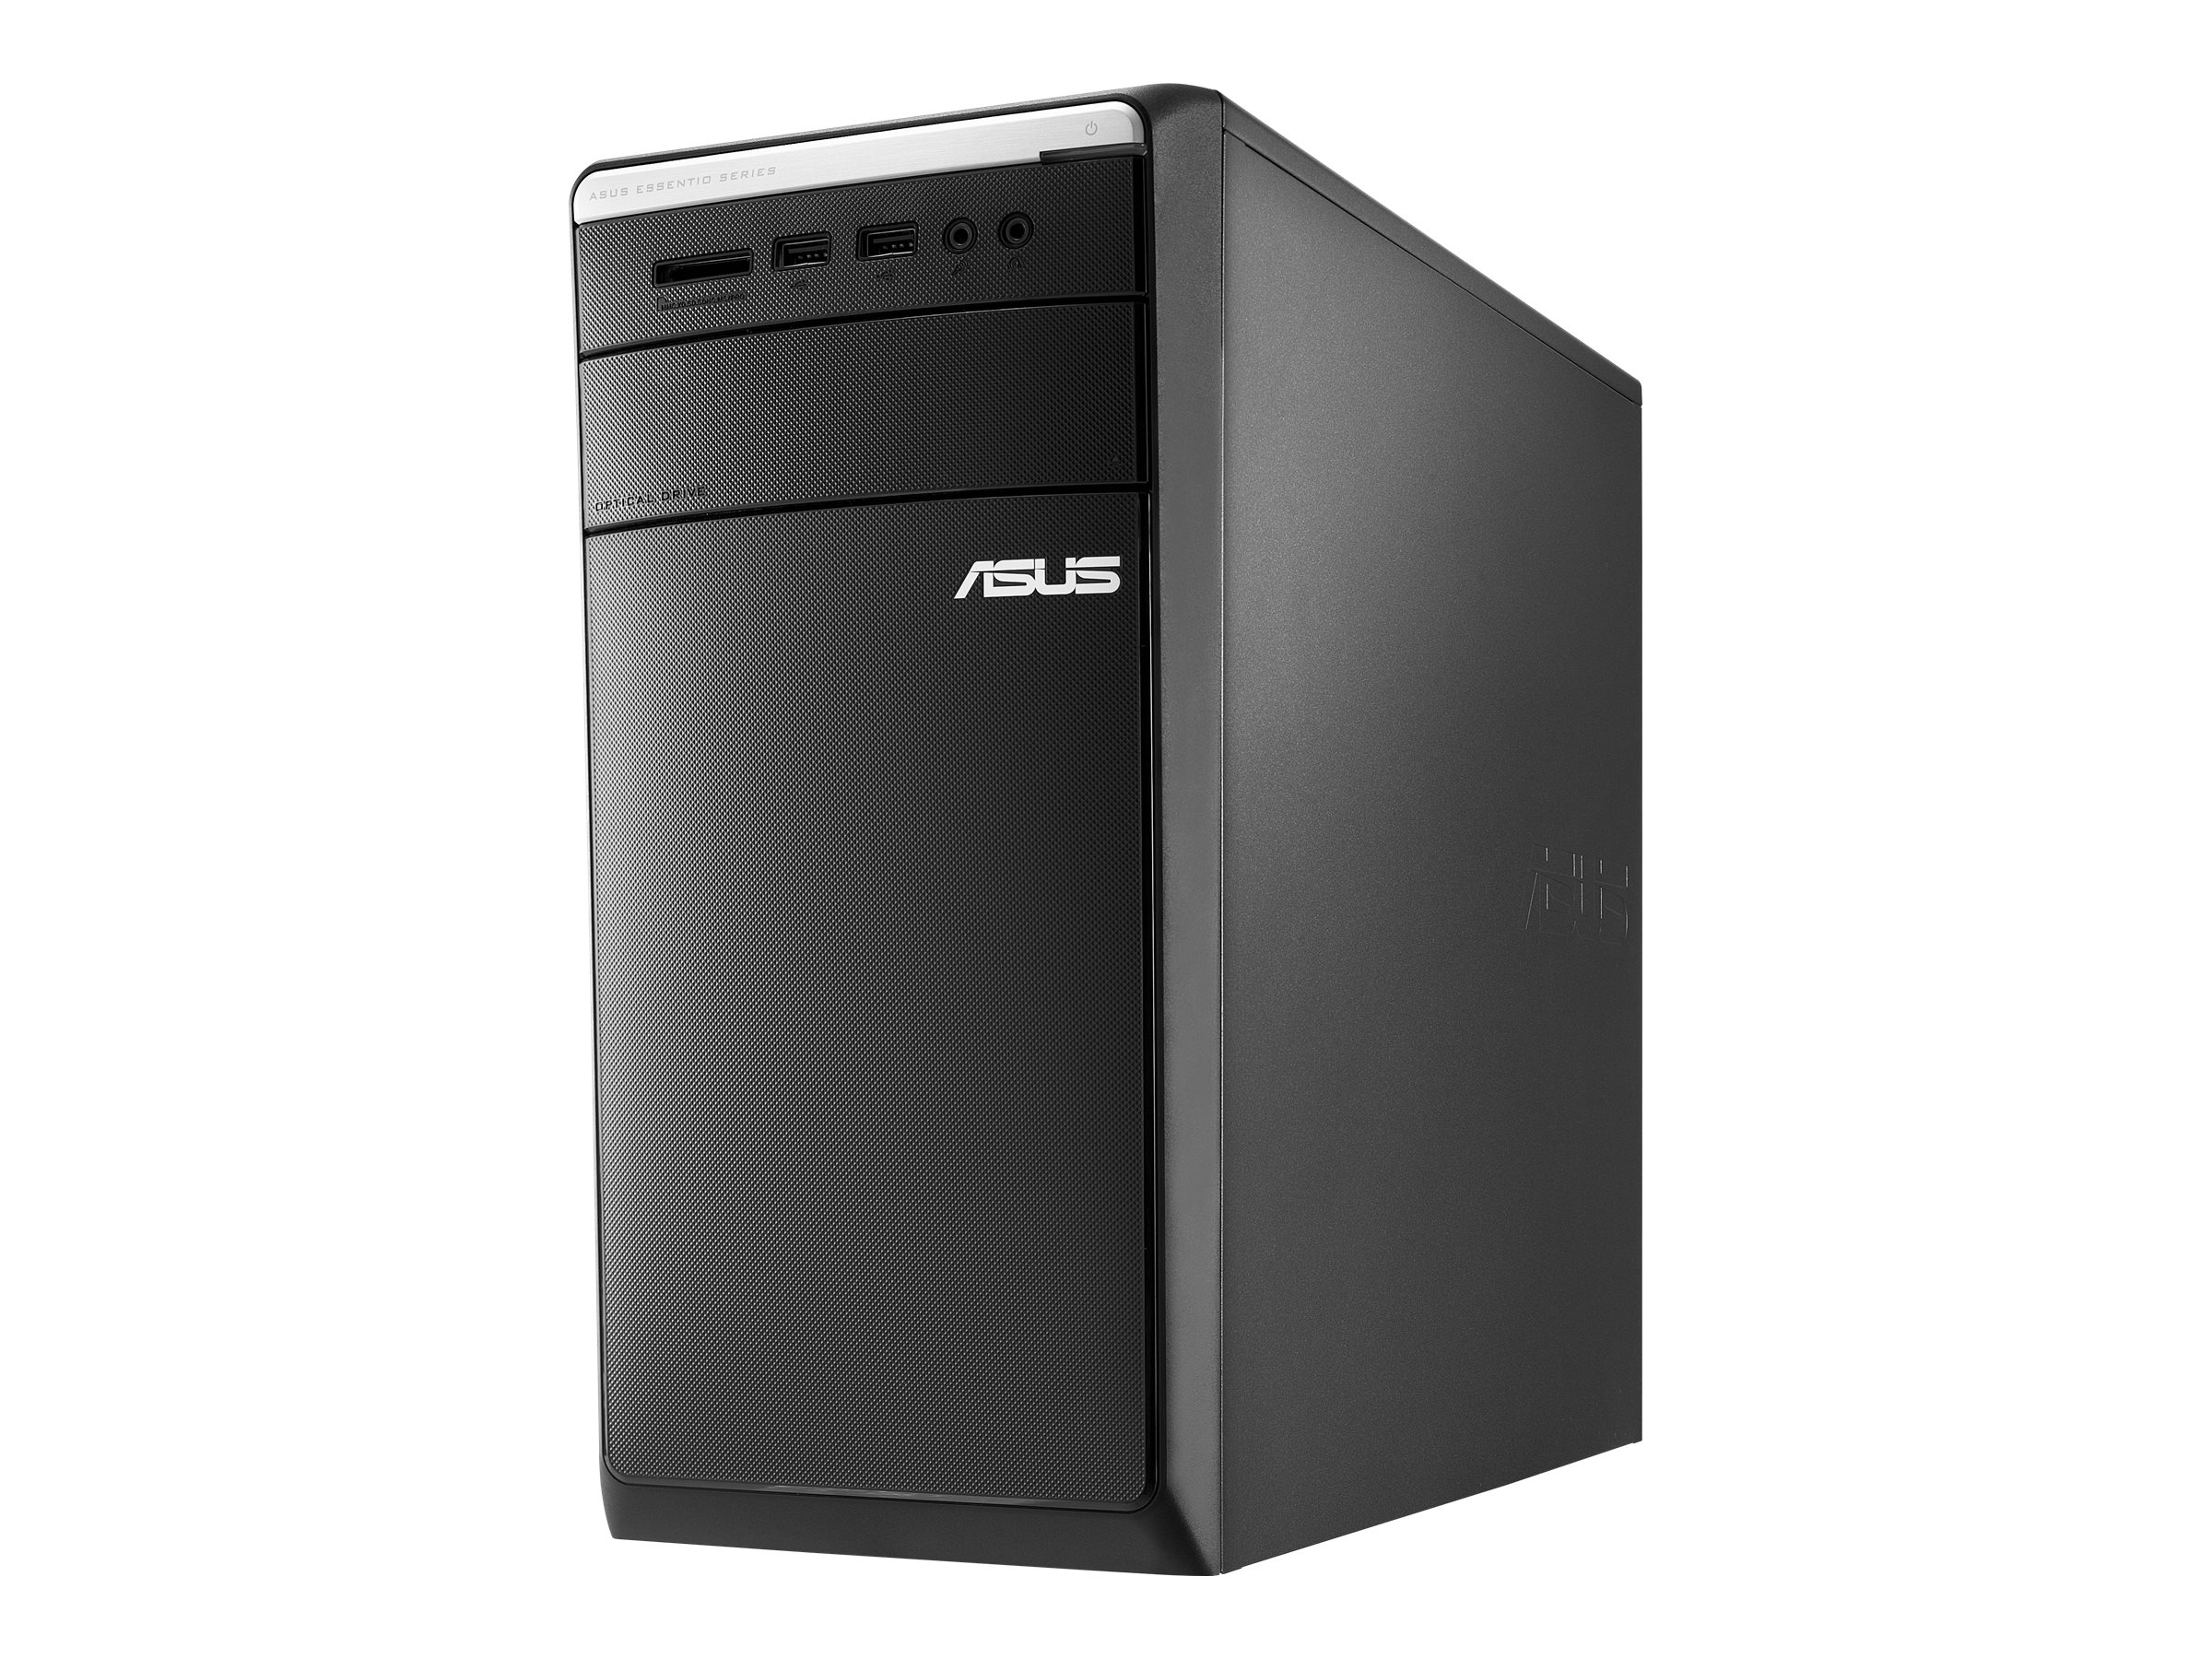 Asus M11AD-US009O Tower Core i3-4150 8GB 2TB DVD+RW GBe HD4600 W7HP, M11AD-US009O, 17599507, Desktops